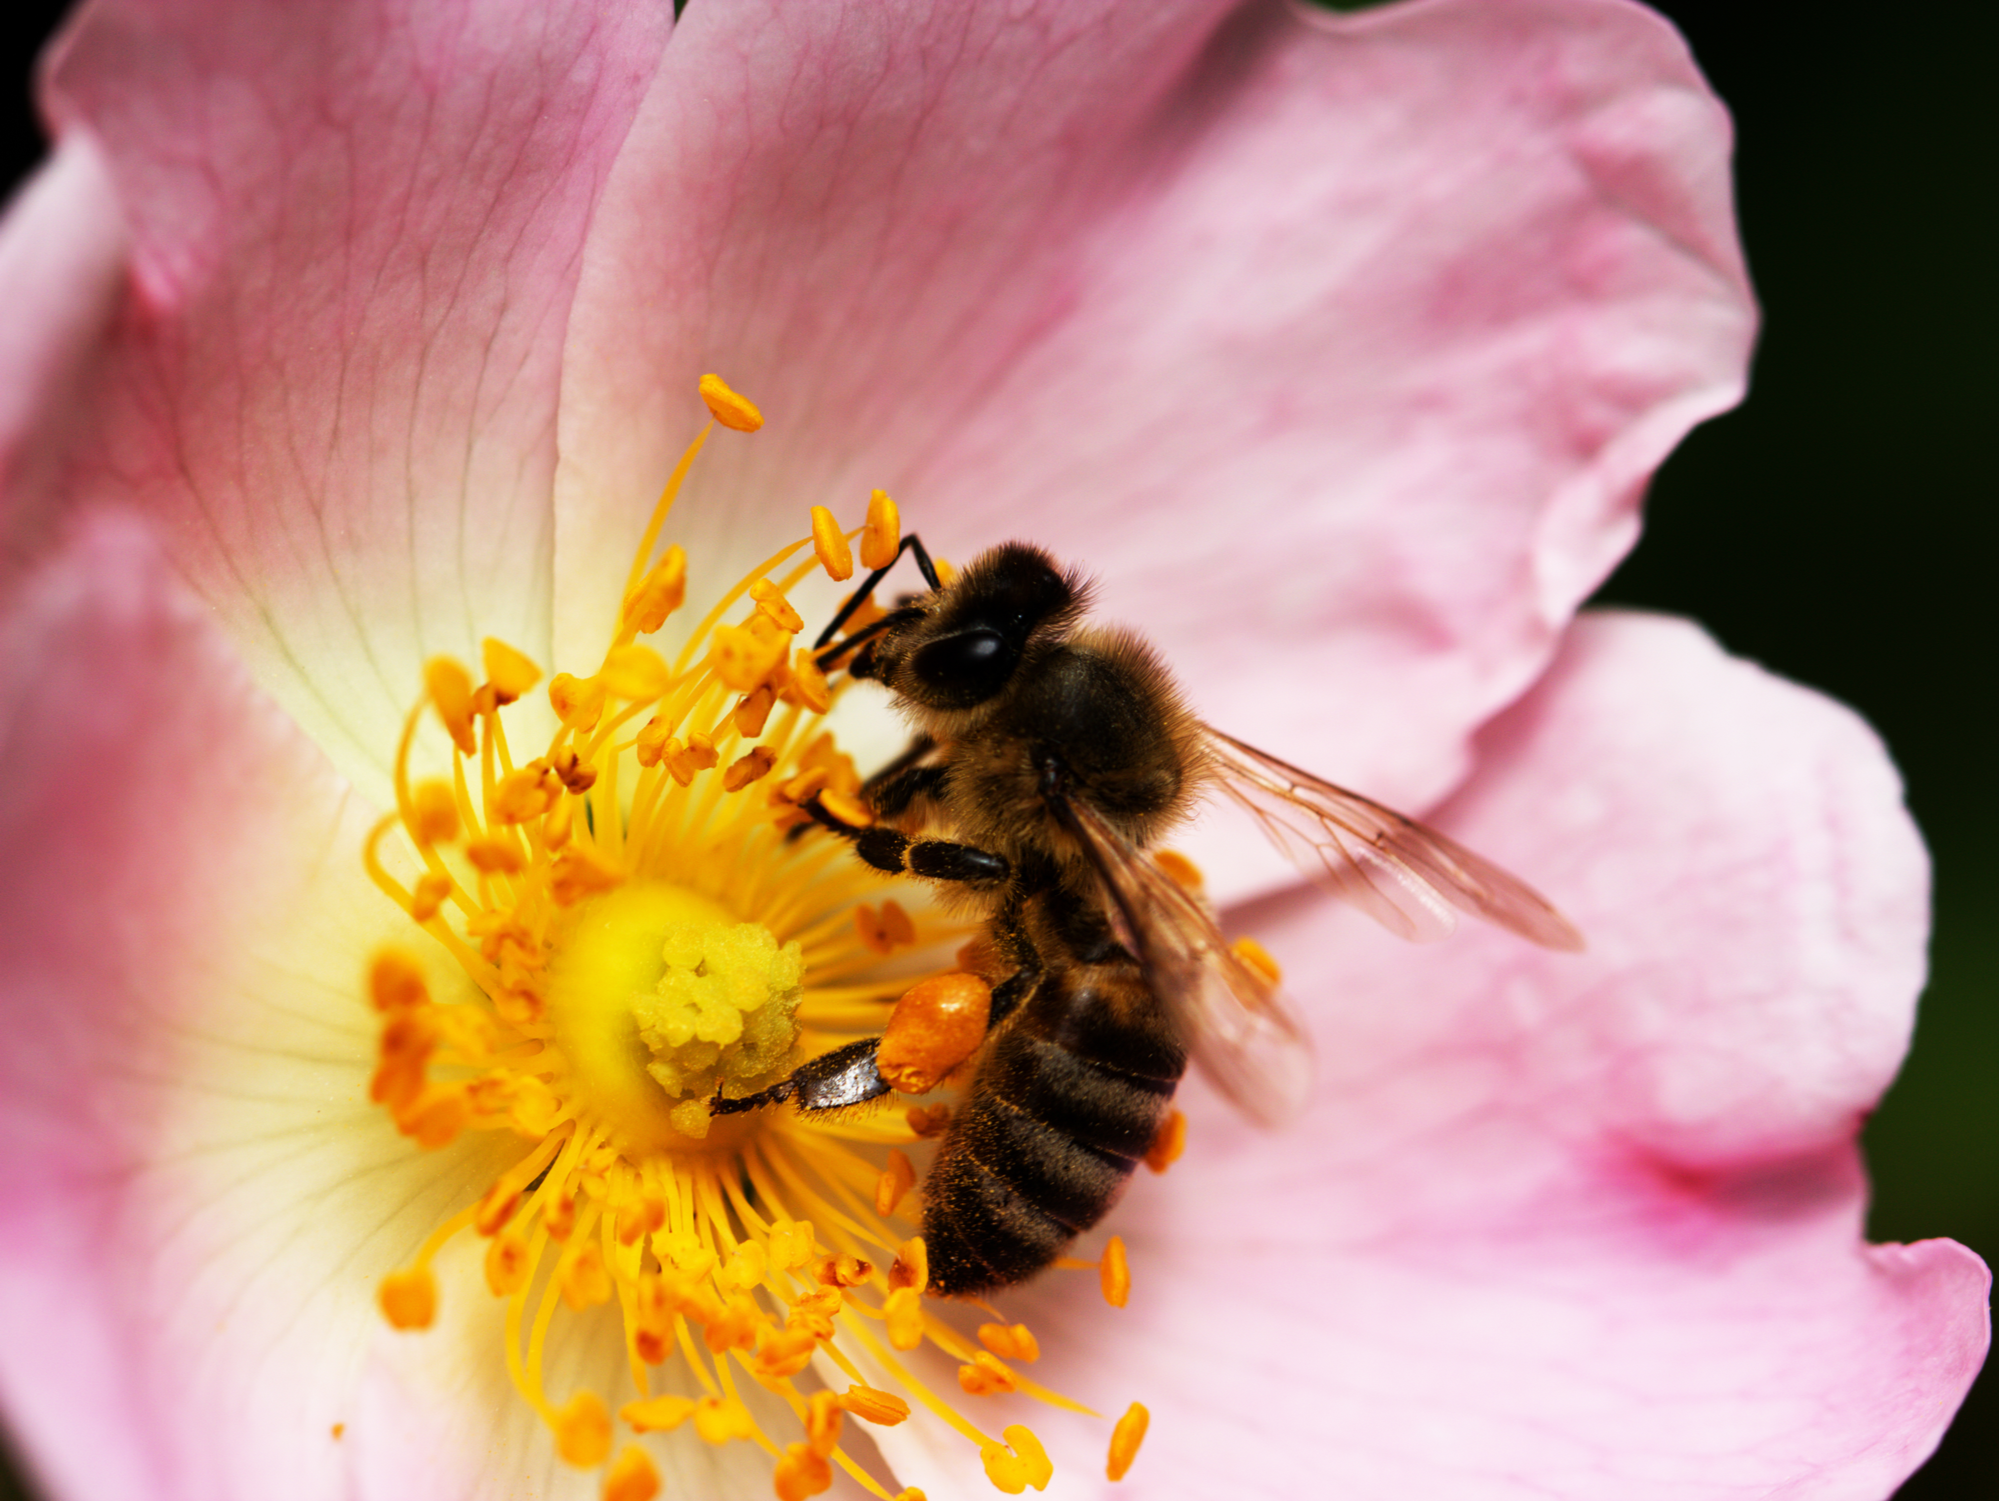 Bee on a flower of a pink flower - 72 ppi